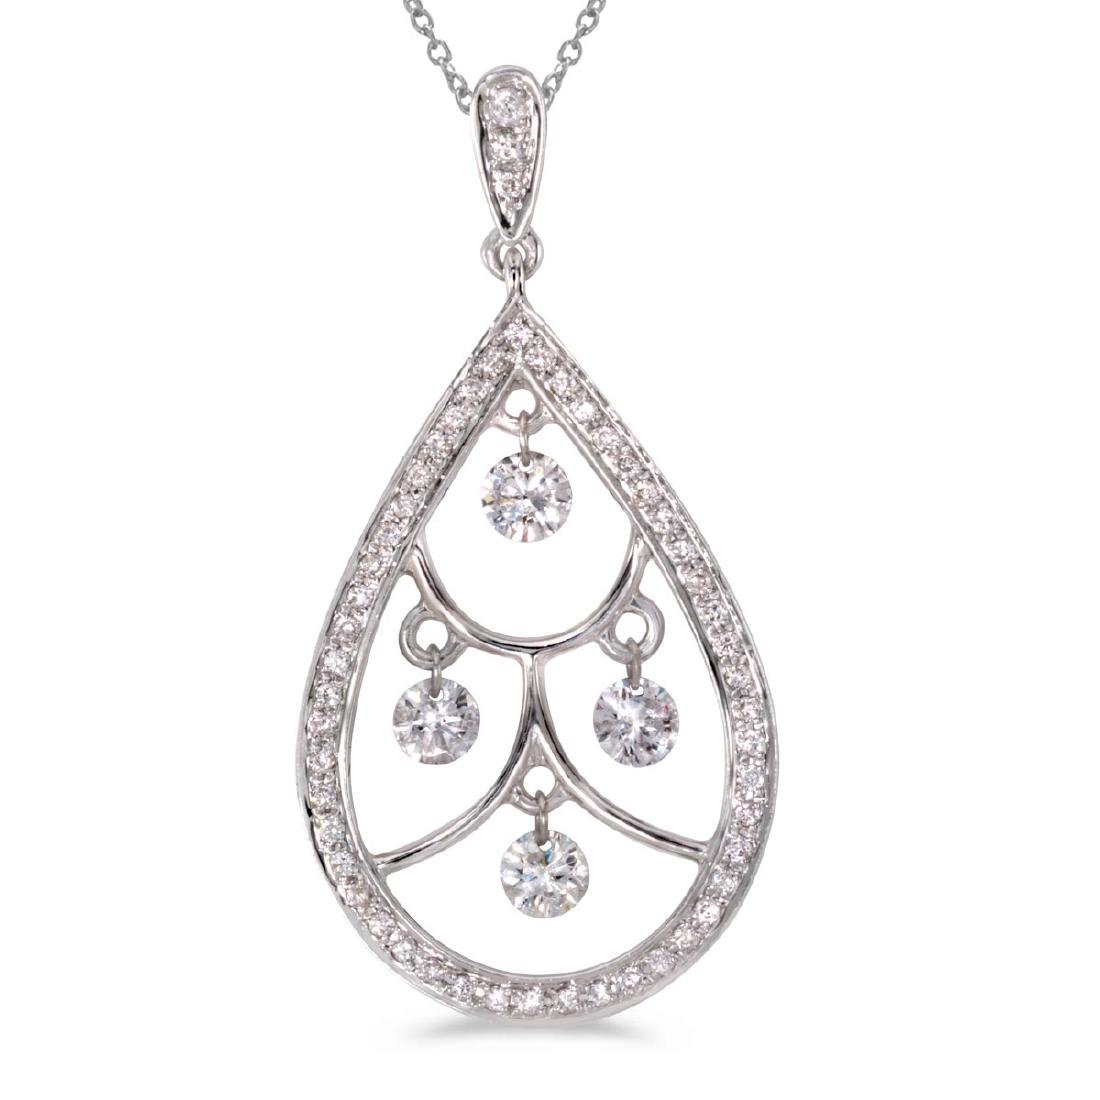 Certified 14K White Gold Dashing Diamonds Pendant